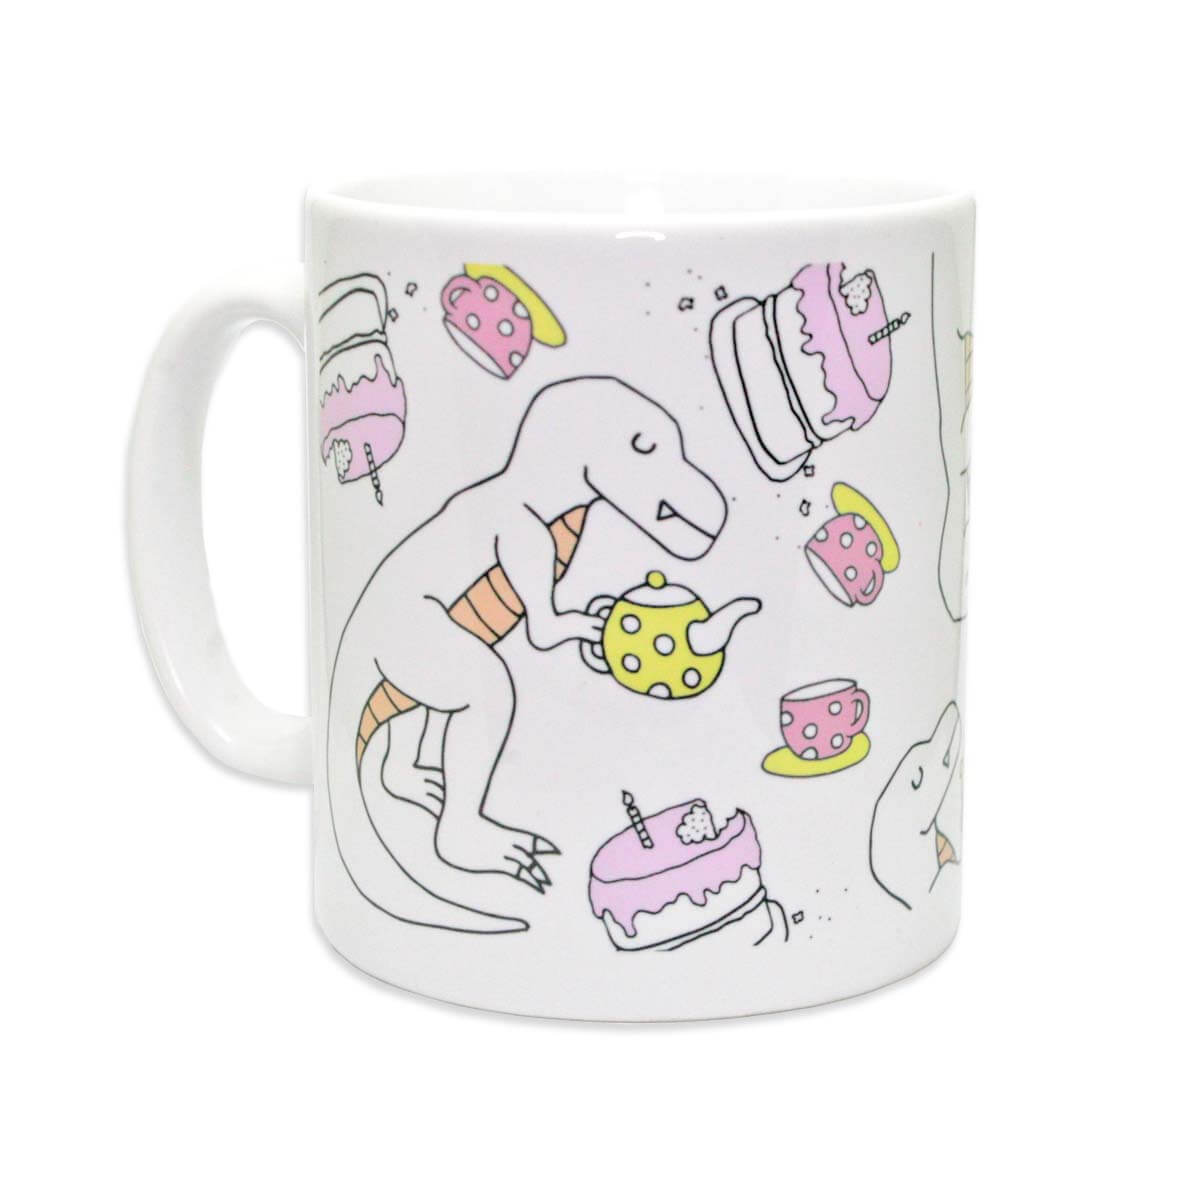 White dinosaur mug with drawing of a t-rex, cake and tea pots